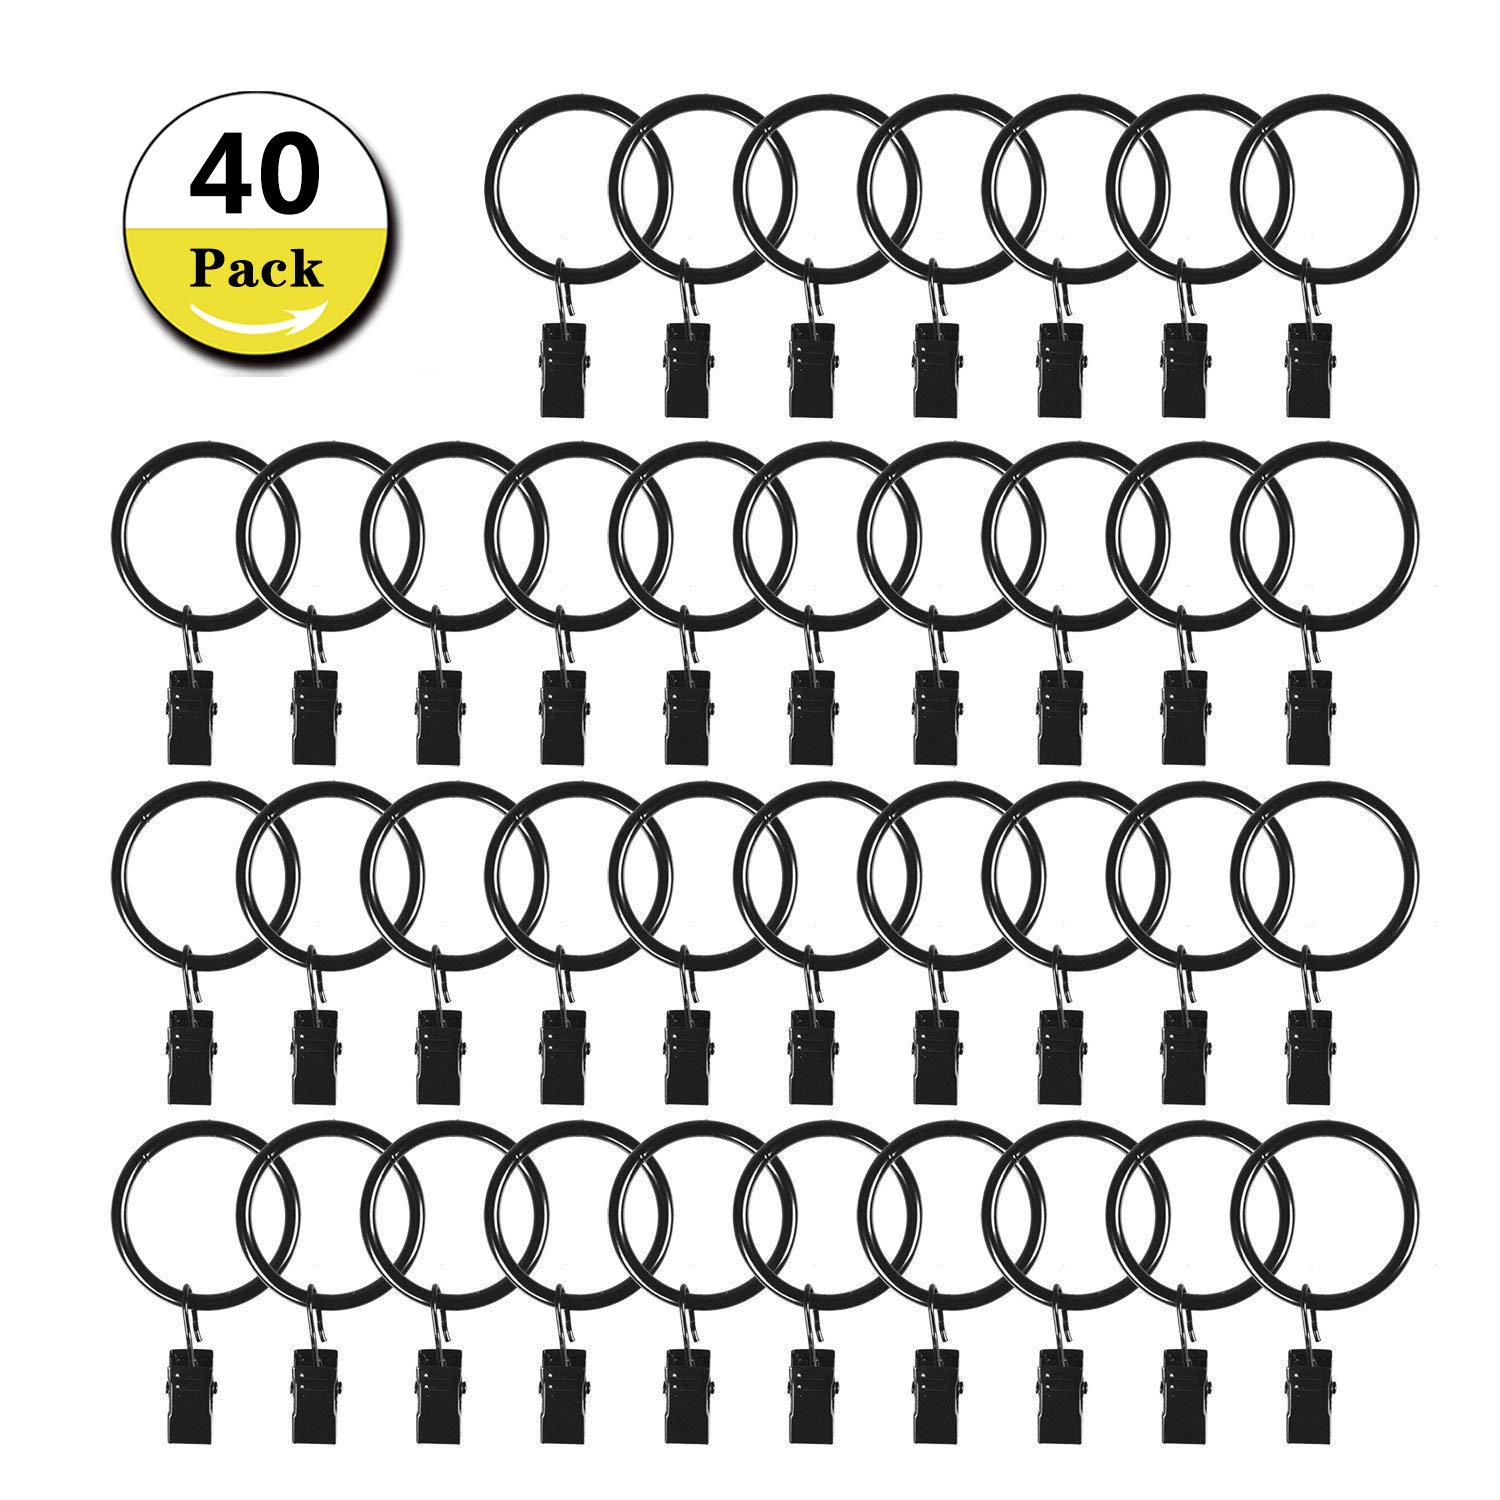 40 Pack Curtain Clip Rings Stainless Steel Metal Decorative Drapery Window Curtain Ring with 1.26 inch Interior Diameter,Black